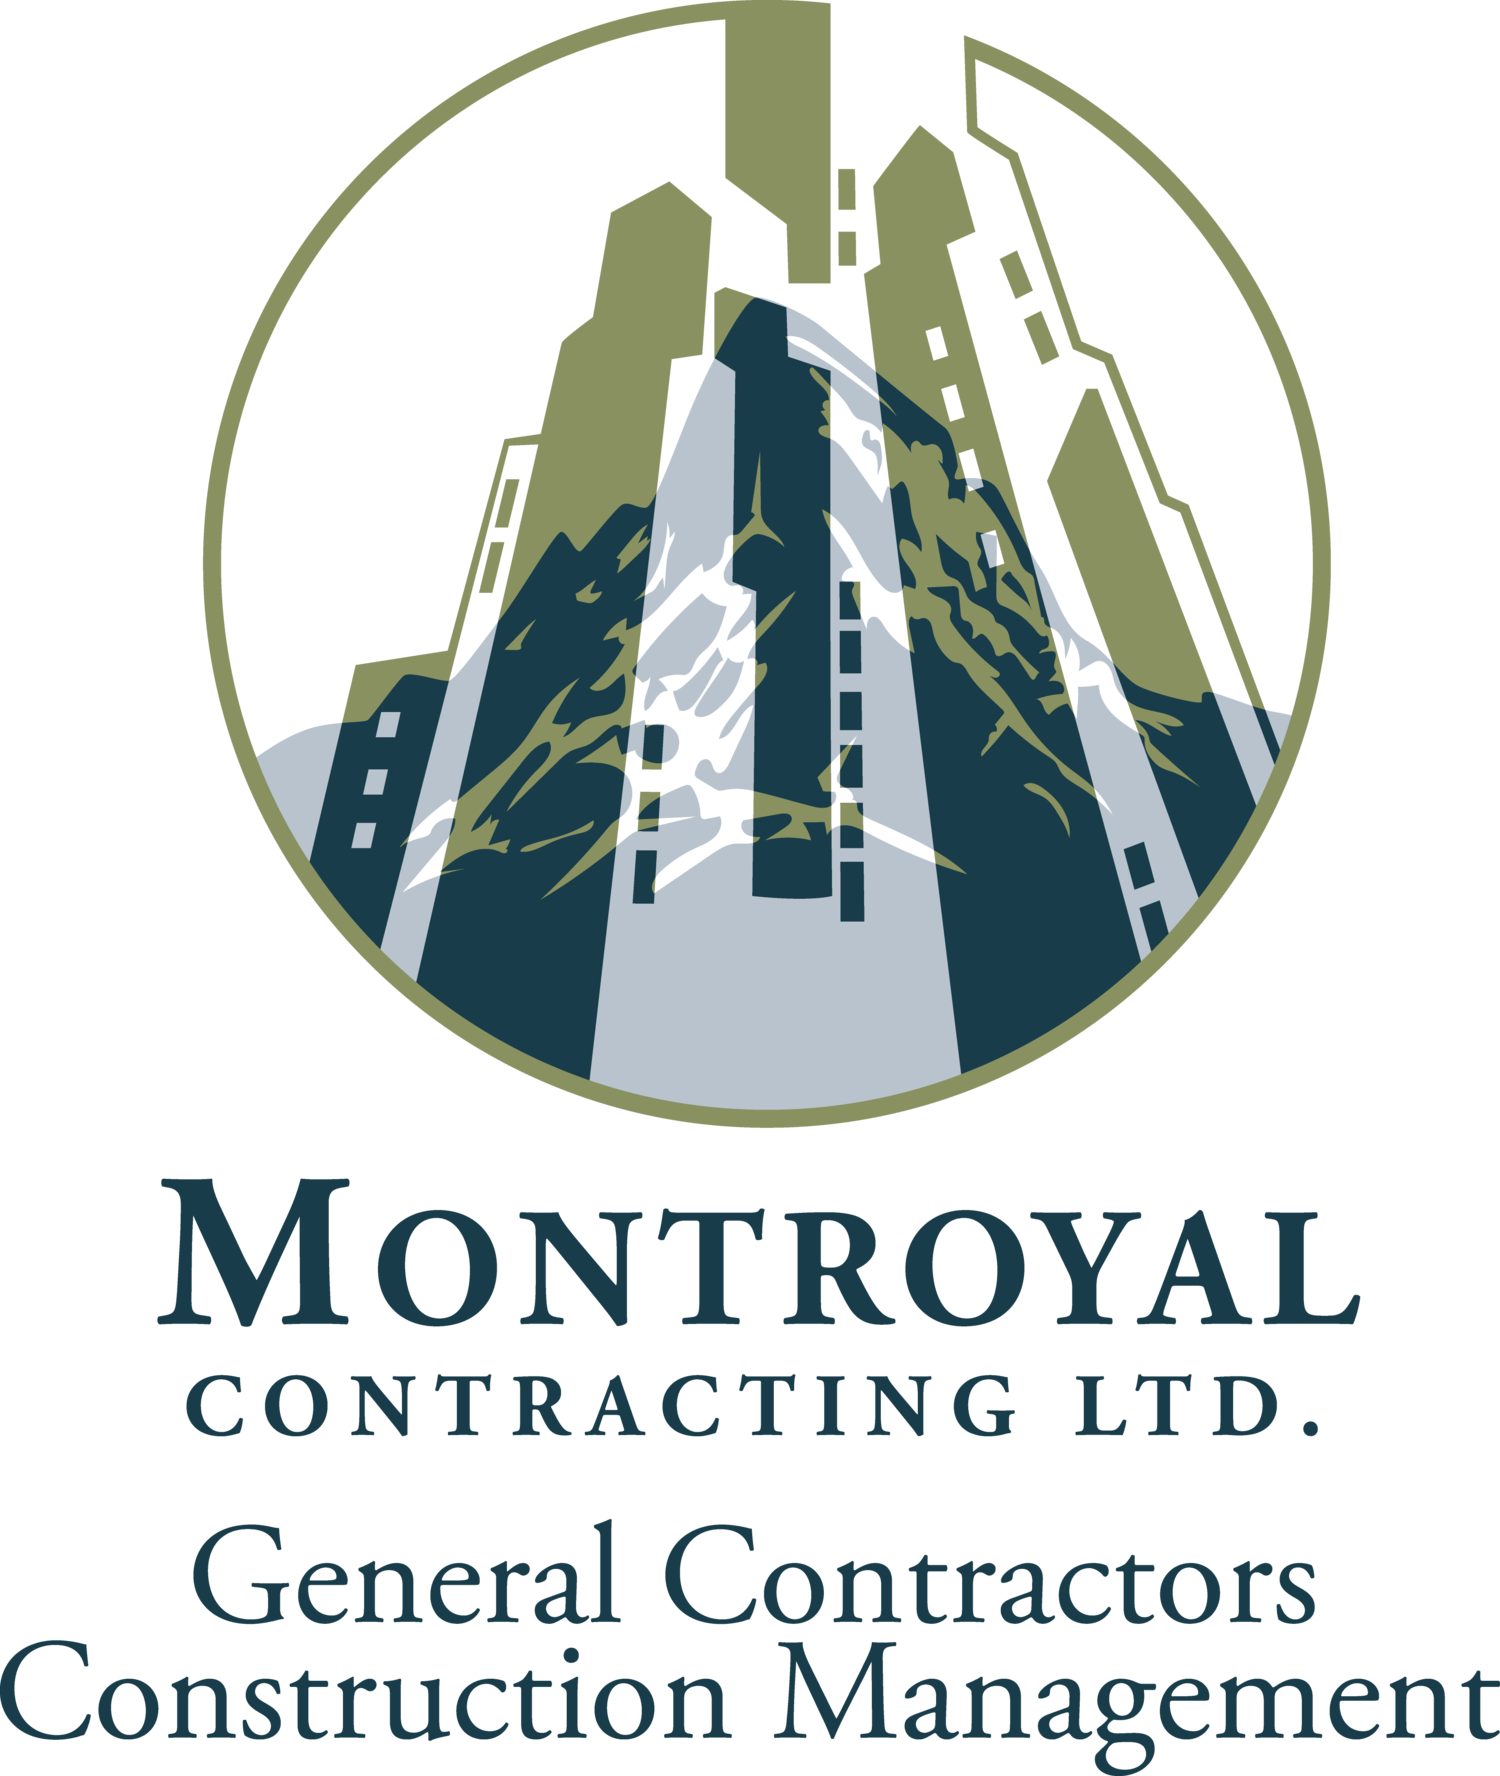 Montroyal Contracting